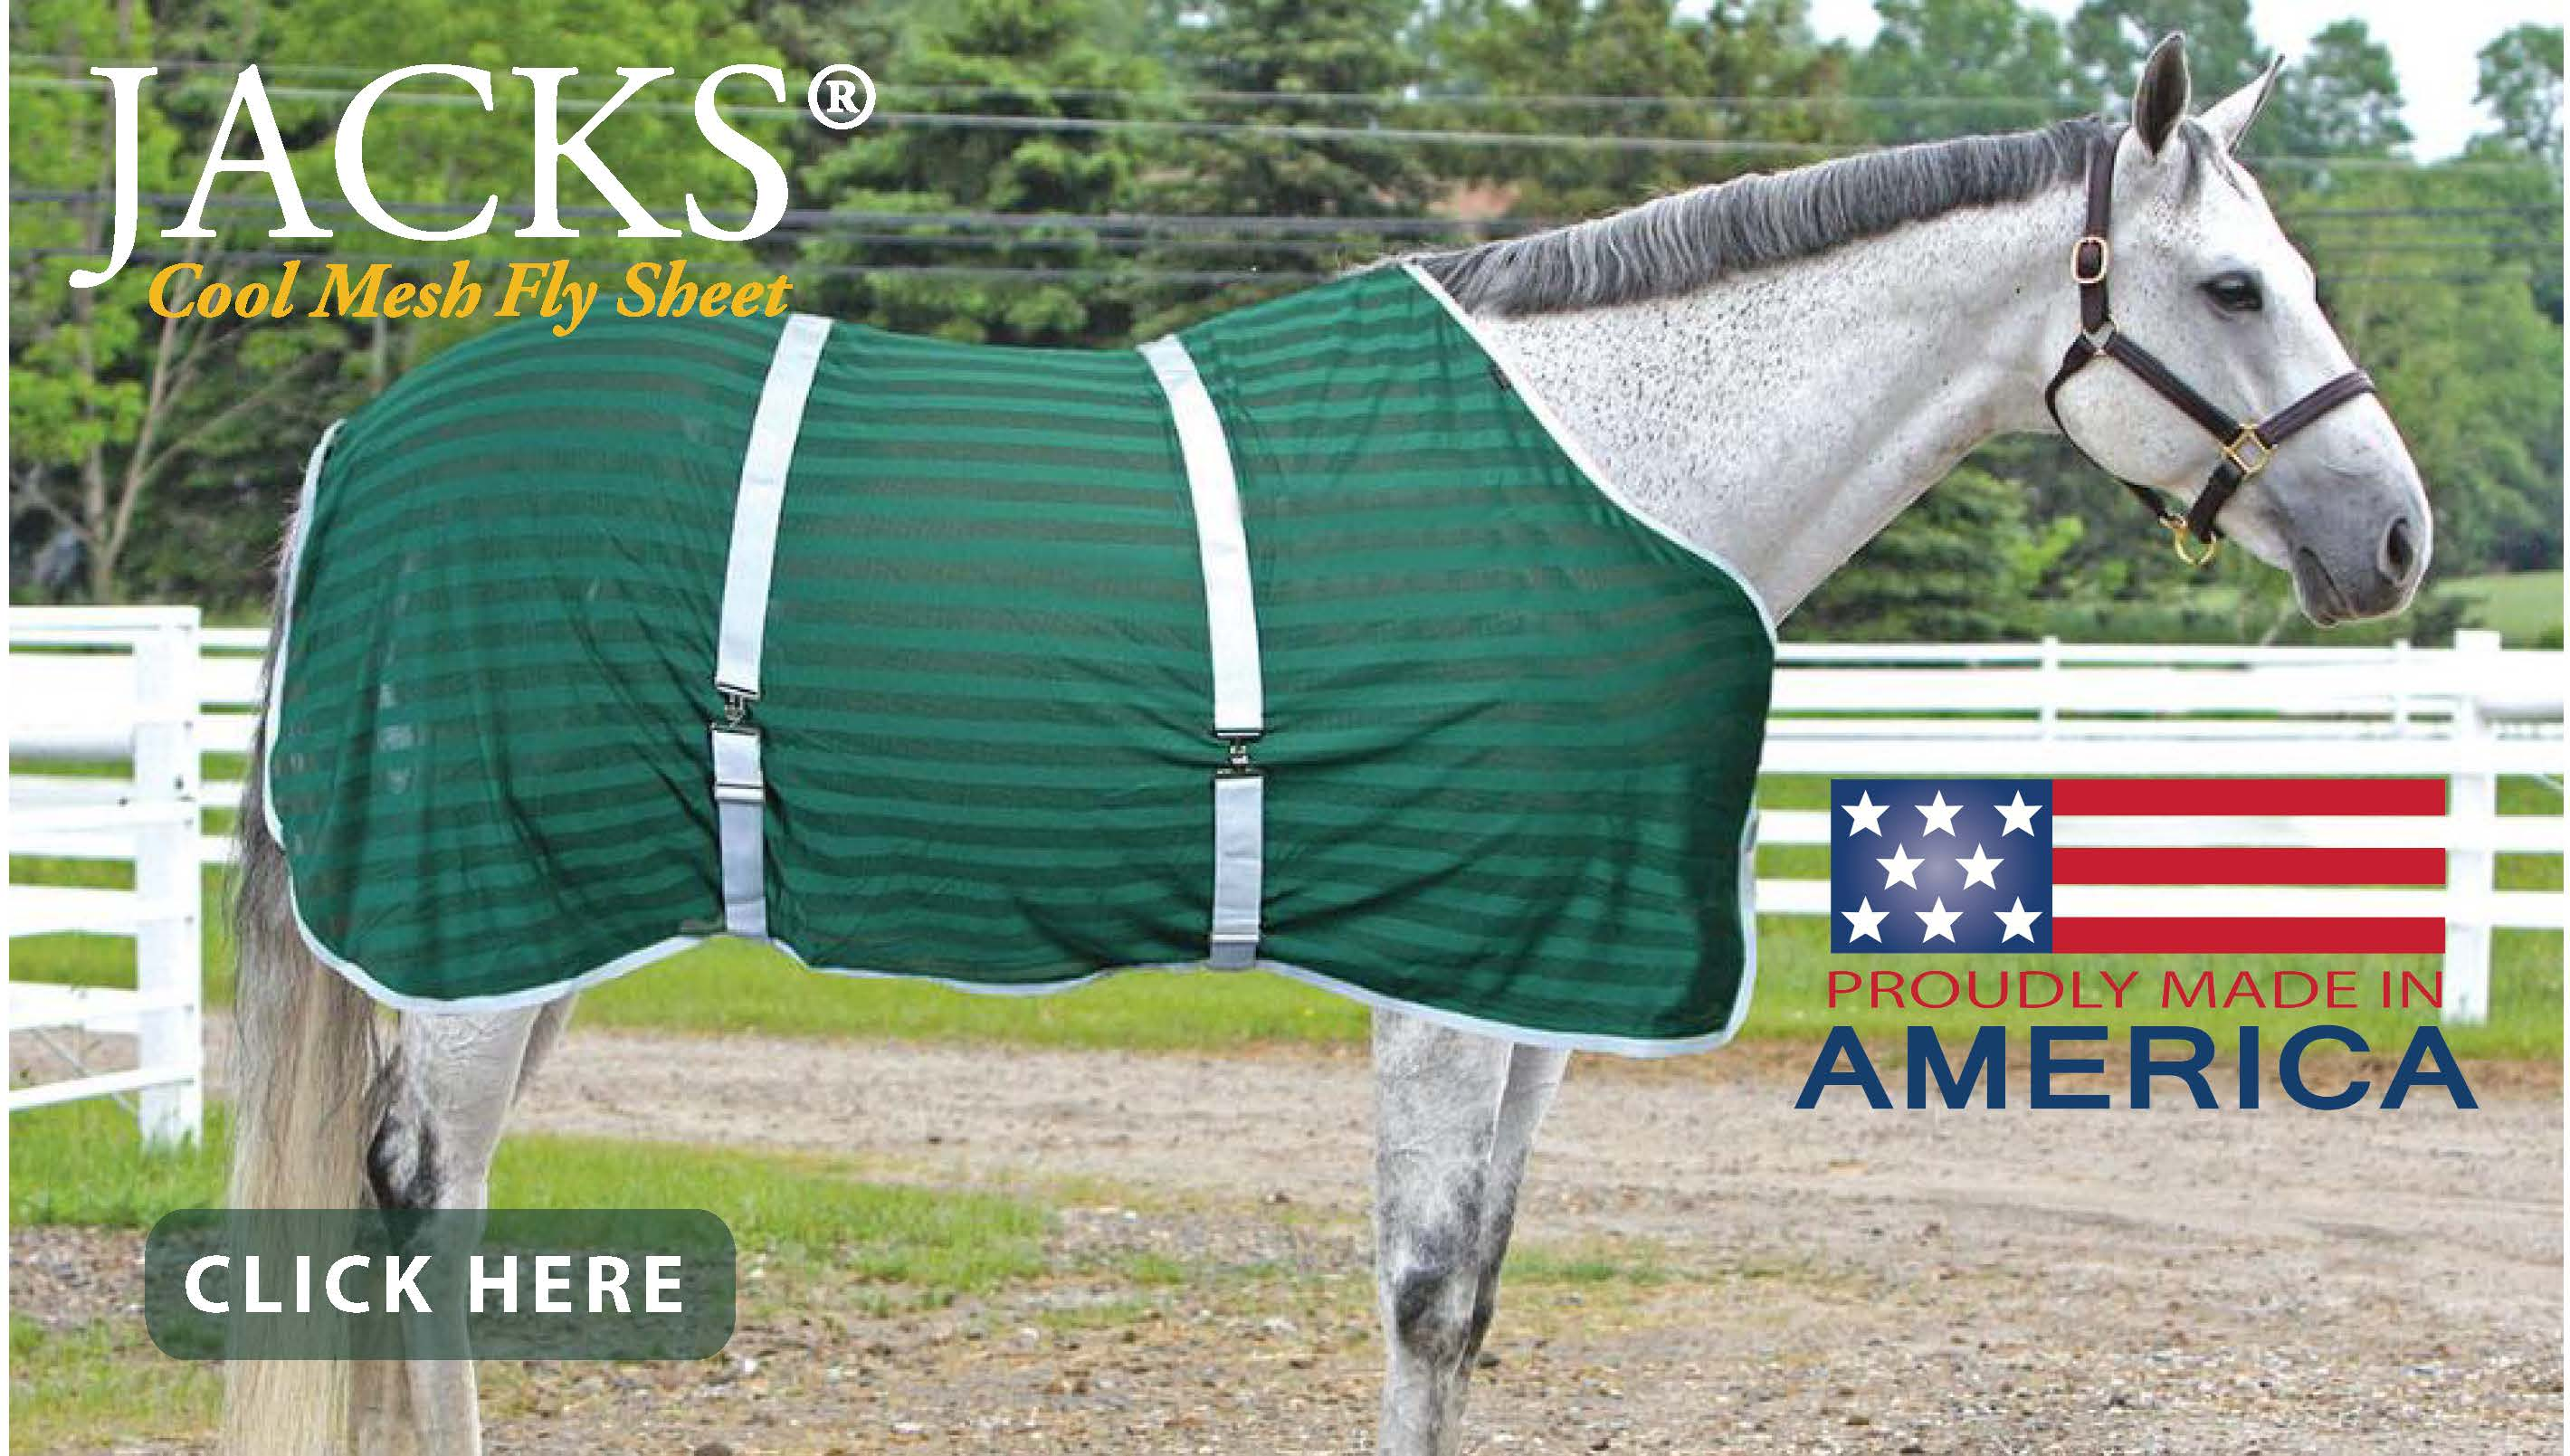 New from JACKS - Cool Mesh Fly Sheets